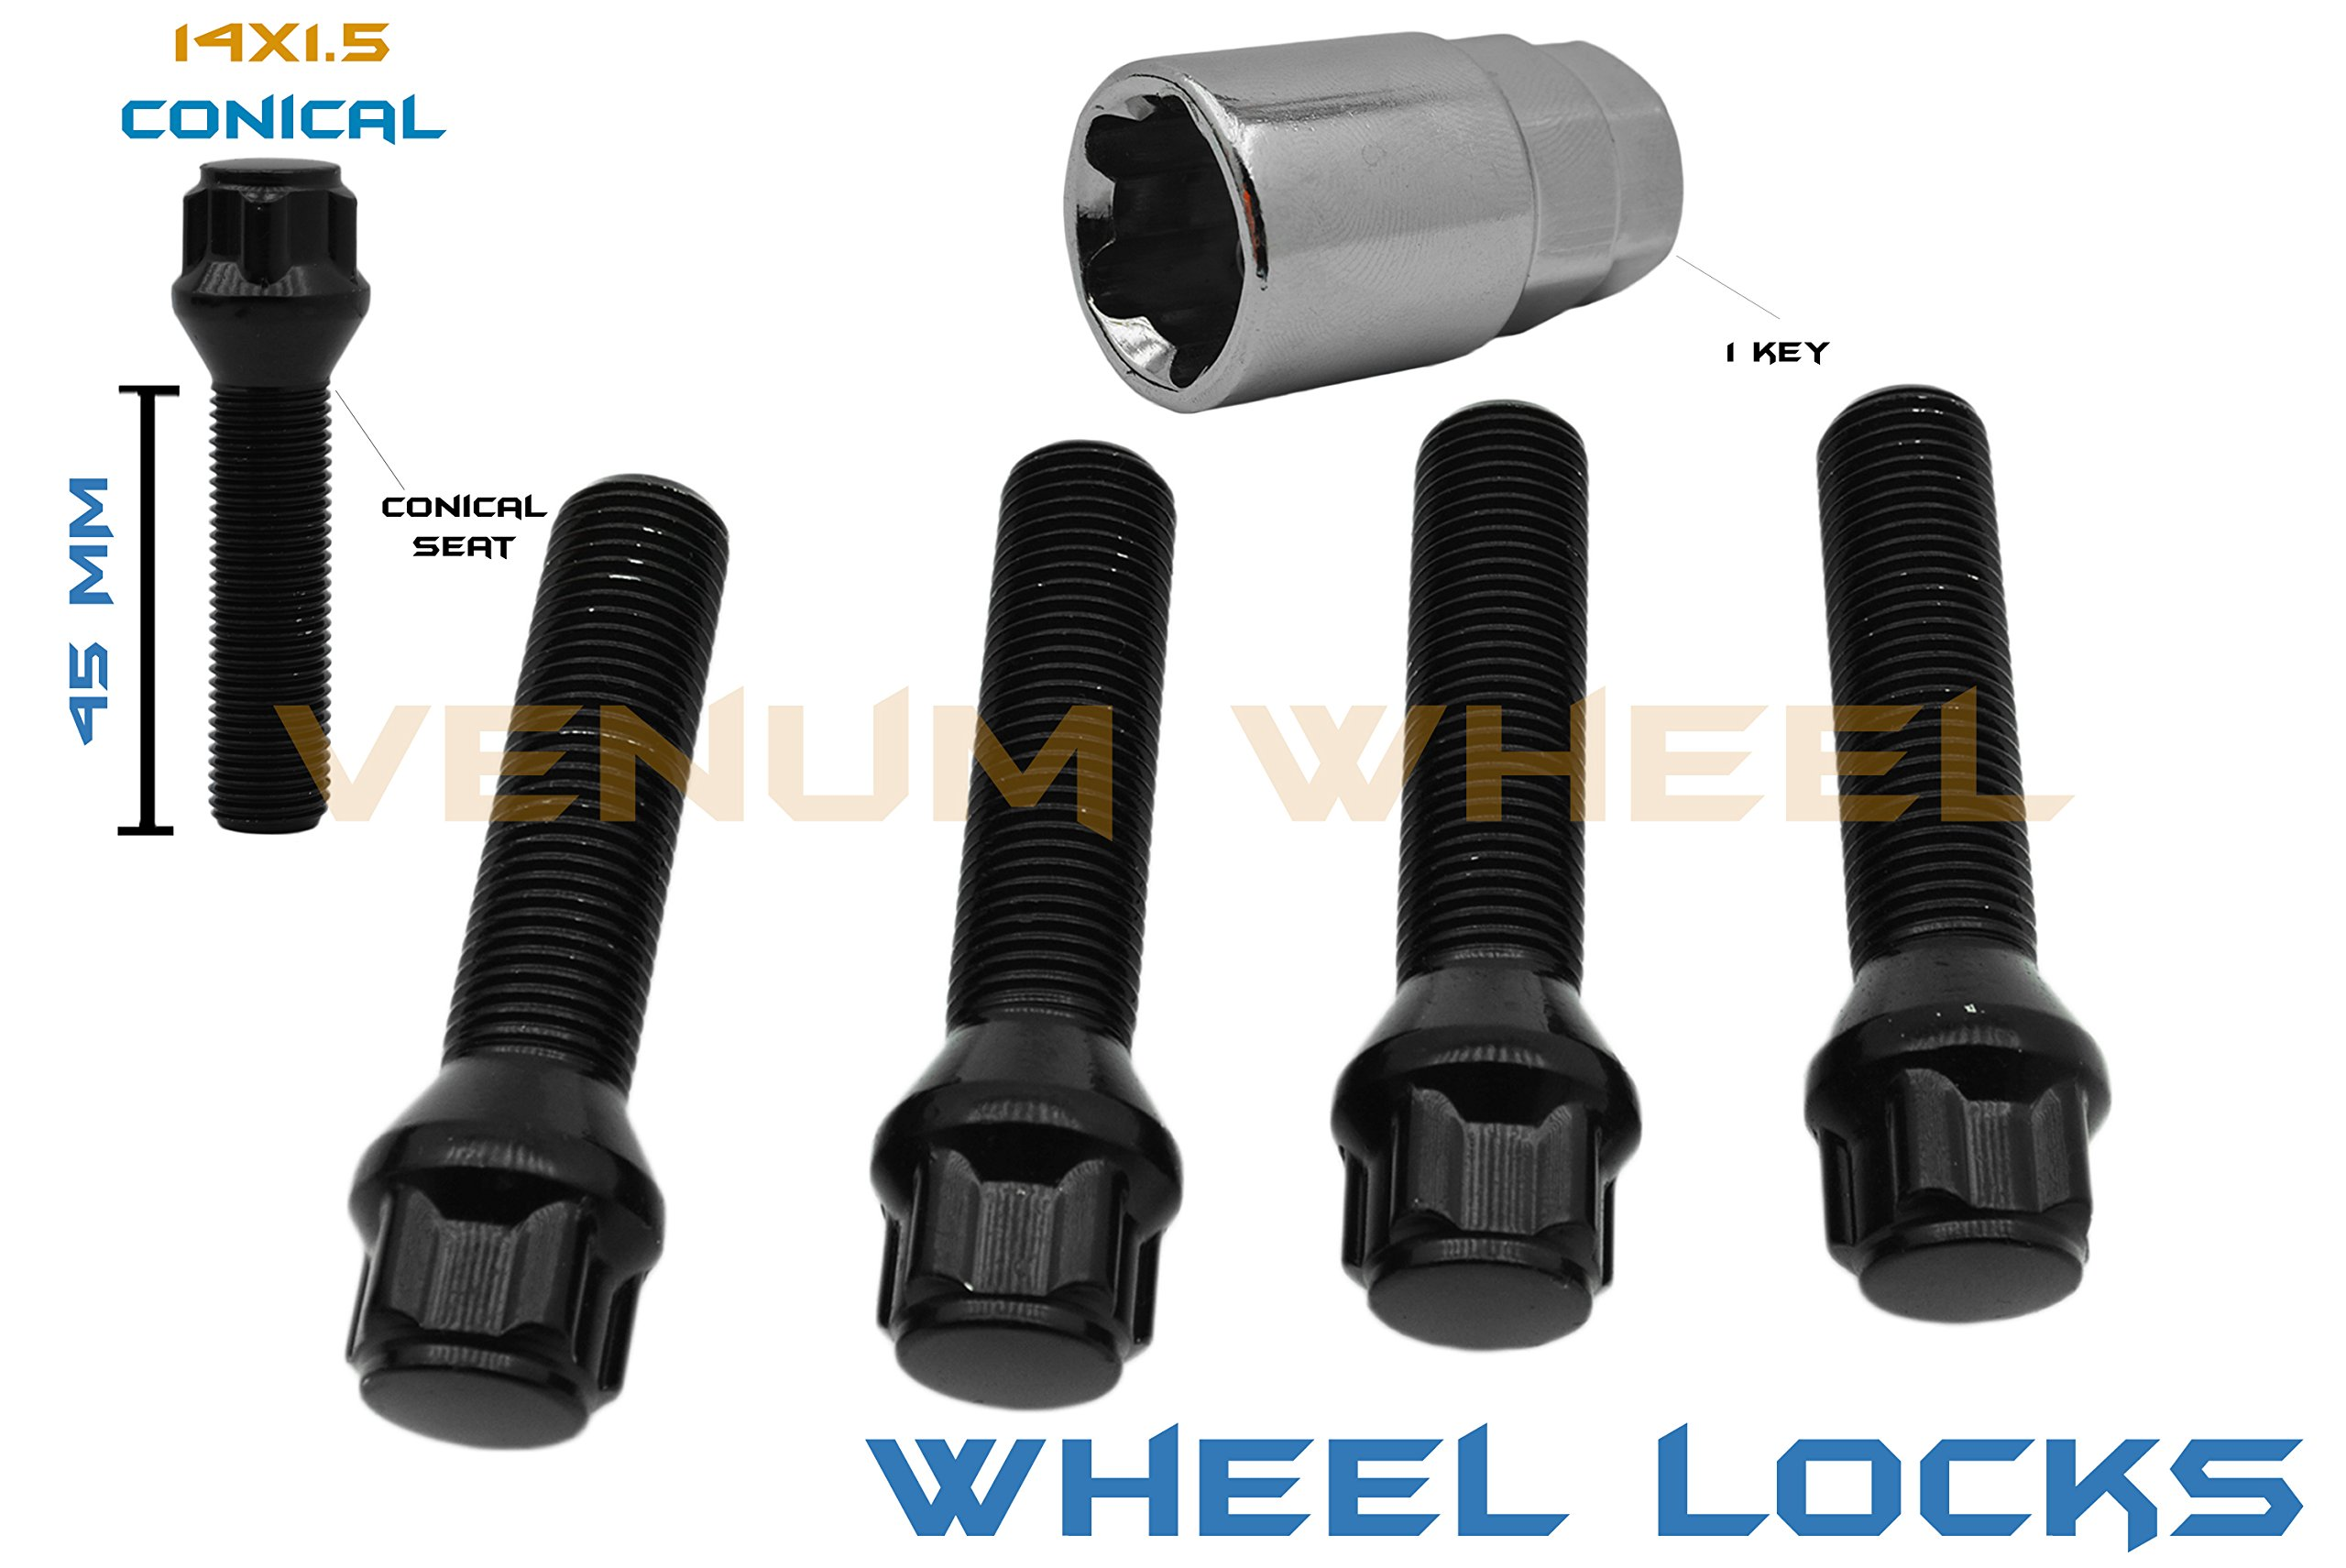 4 Black Wheel Locks 14x1.5 Locking Bolts Lock Steel 45mm Extended Shank Lug Bolts W/1 Key Included Fits Audi Bmw Mercedes Benz Porsche Volkswagen by Venum wheel accessories (Image #1)